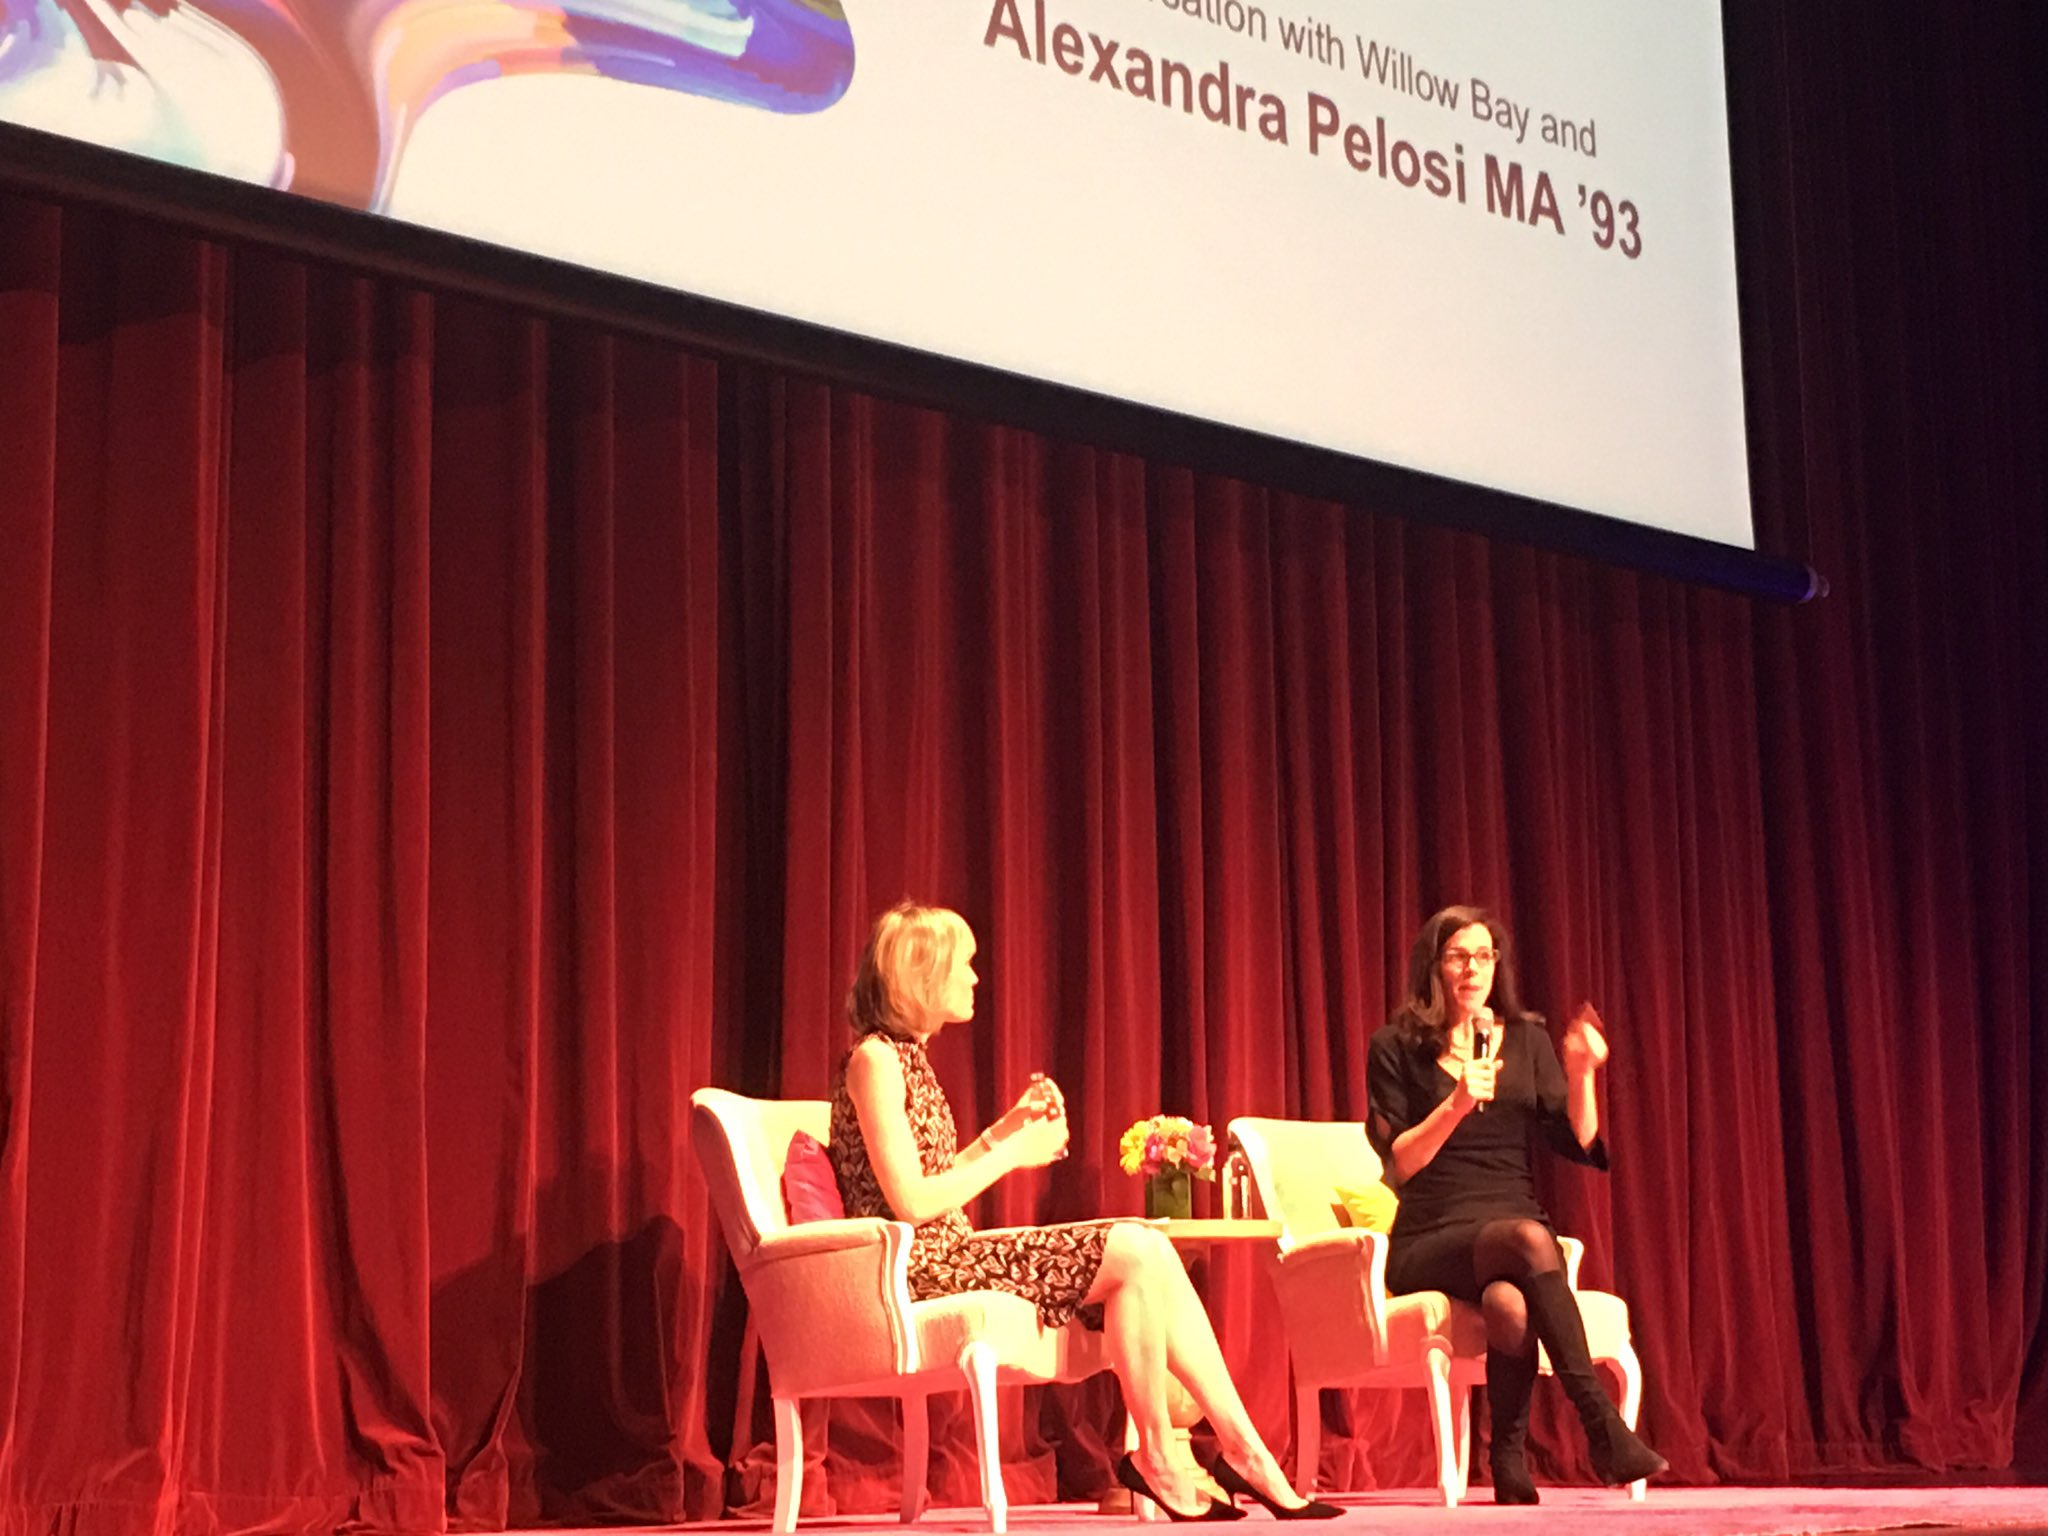 Amazing, funny, and inspiring moment with #alexandrapelosi at the USC Women's Conference #uscwc https://t.co/fK0unvXfvE